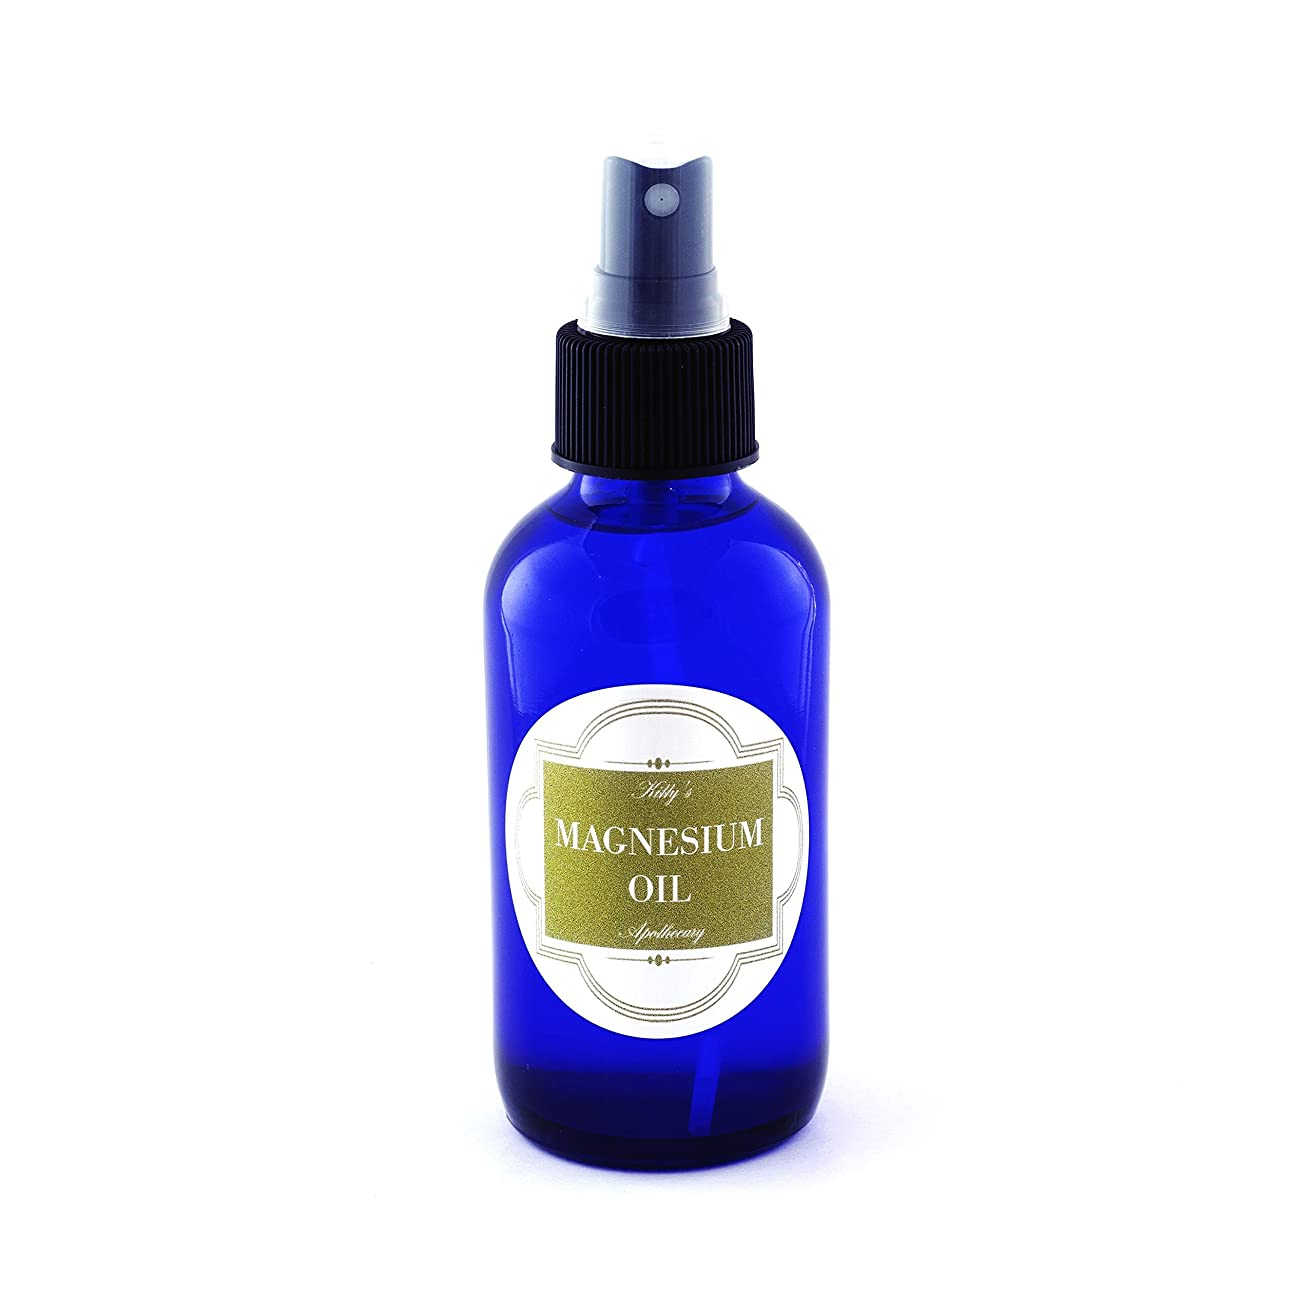 Rose Magnesium Oil Body Spray (4 FL Oz | 118 ML) Aromatherapy Body Spray, Natural Deodorant Spray, Stop Muscle Cramps, Soothe Sore Muscles, Floral Body Spray with Magnesium Chloride